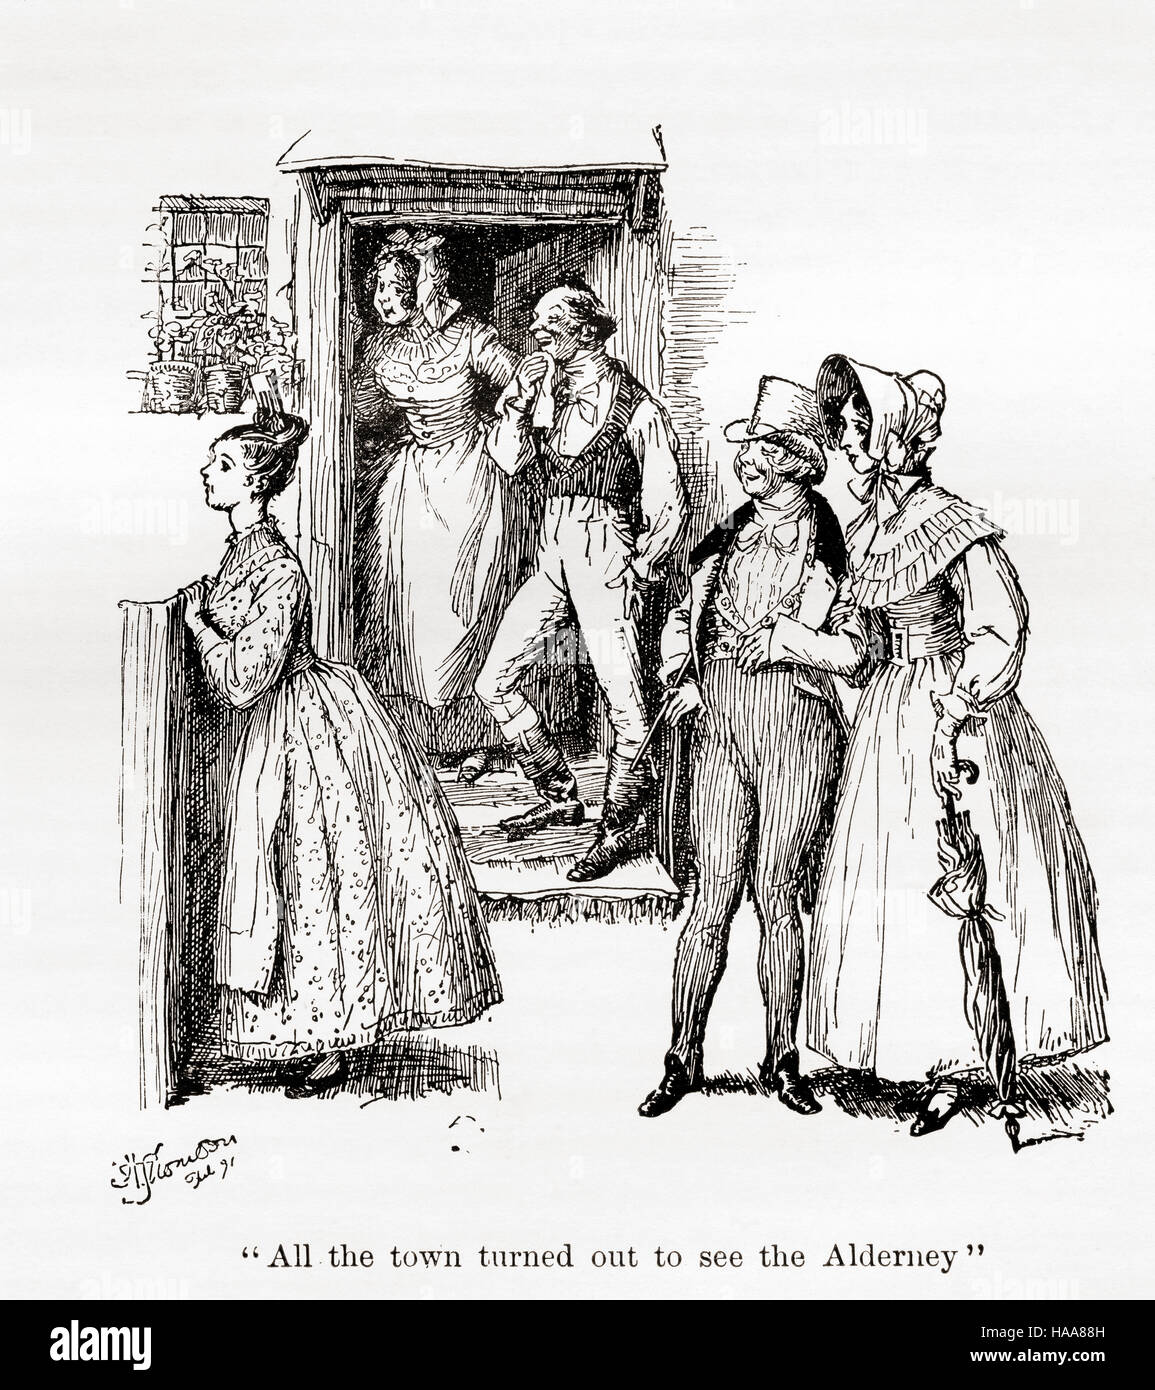 'All the town turned out to see the Alderney'  Illustration from the novel Cranford by Elizabeth Gaskell. - Stock Image